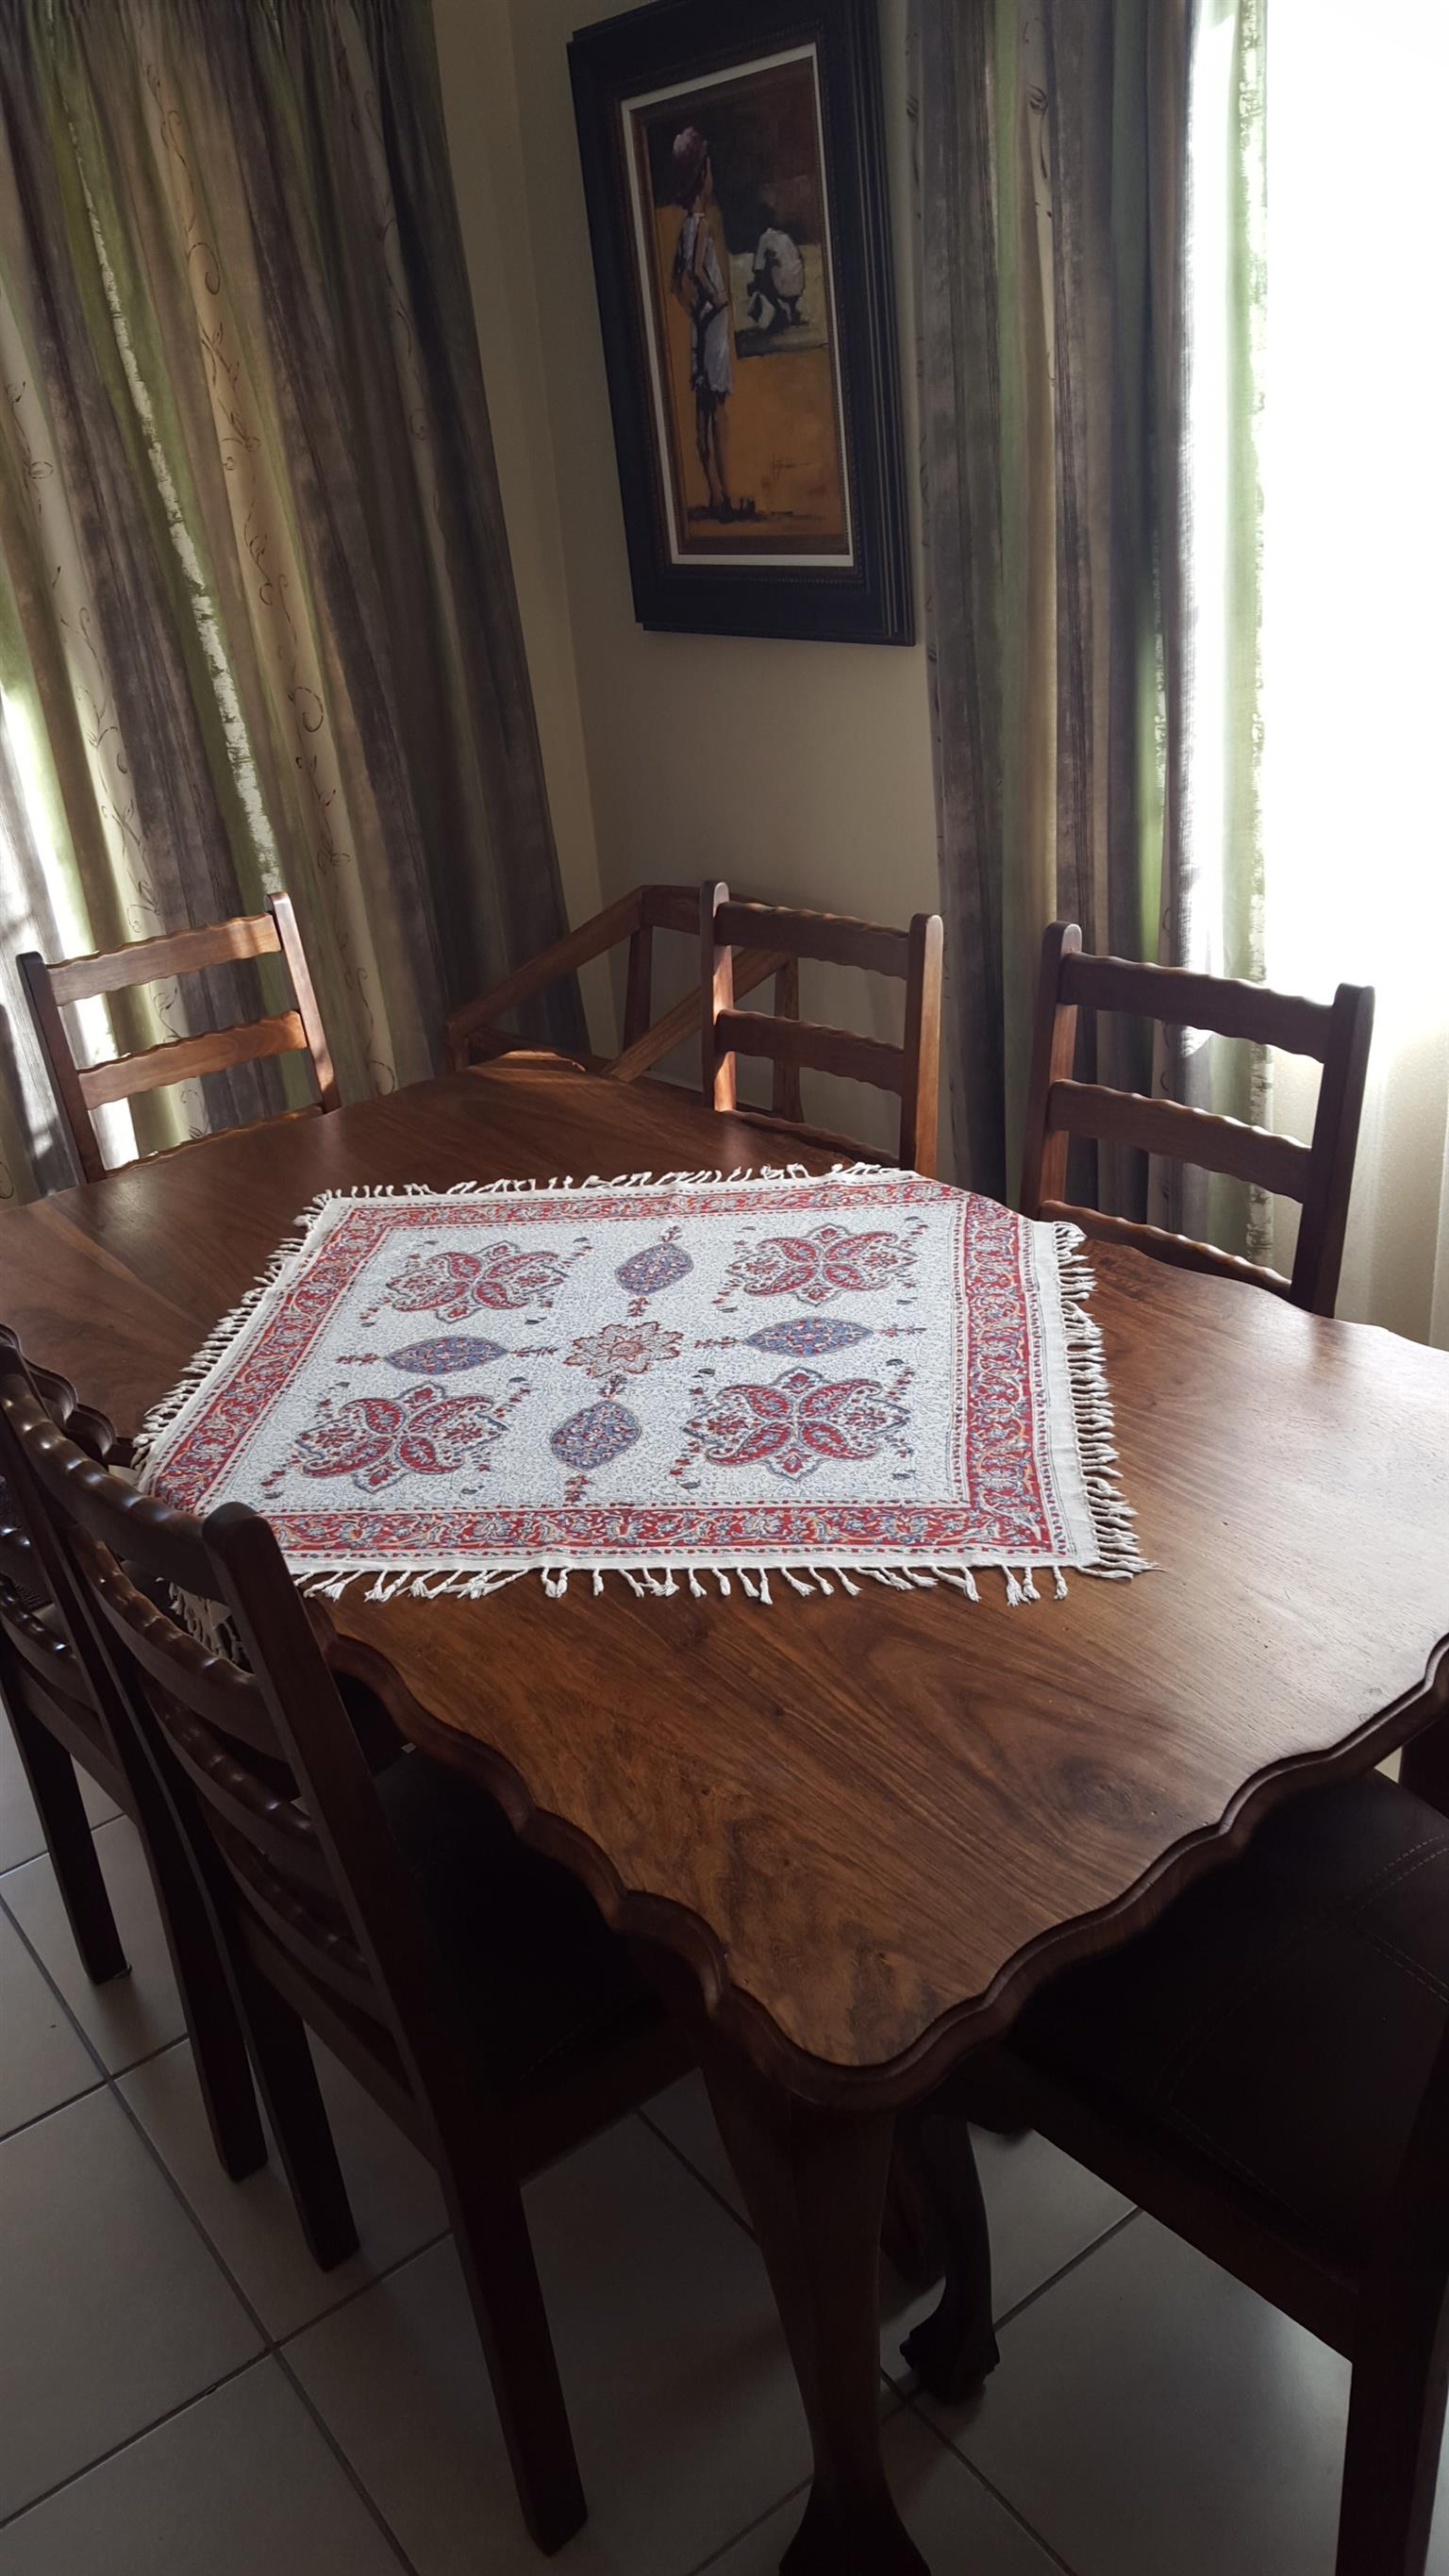 6 Seat Teak Ball & Claw Dining Room Set